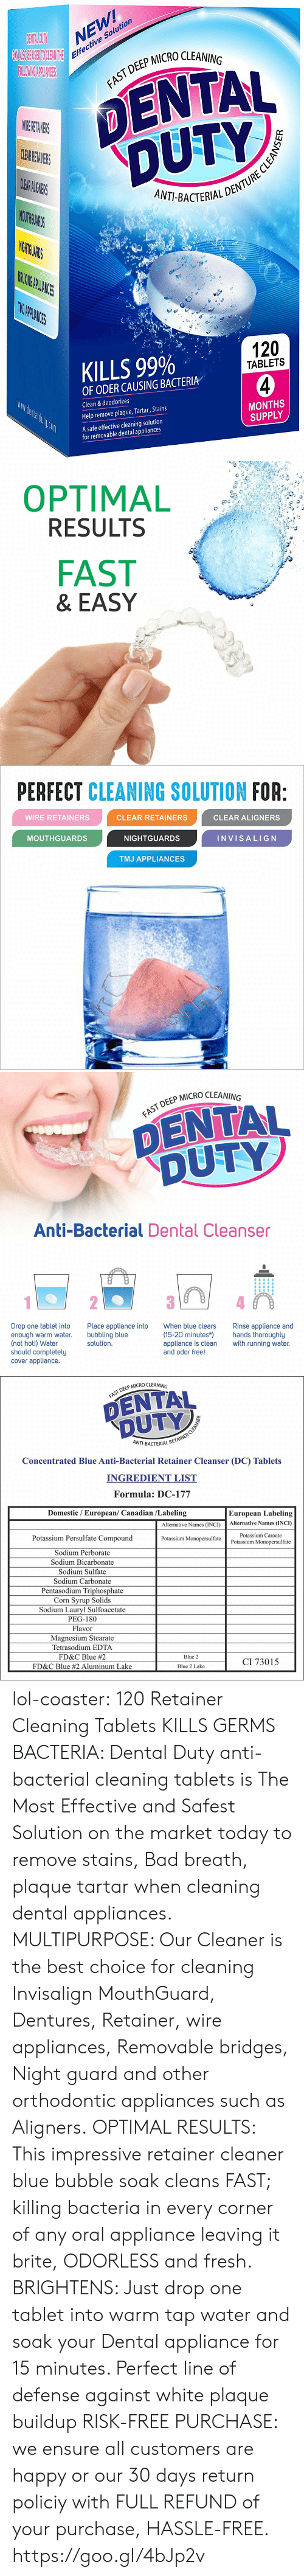 Plaque: NEW  e Solution  Effectiv  P MICRO CLEANING  DENTAL  DUTY  AST DEEP  CL  ANT-BACTERIALD  THG  PLIANIES  KILLS 99%  120  TABLETS  OF ODER CAUSING BACTERIA  Clean & deodorizes  Help remove plaque, Tartar, Stains  A safe effective cleaning solution  MONTHS  SUPPLY  for removable dental appliances   OPTIMAL  RESULTS  FAST  & EASY   PERFECT CLEANING SOLUTION FOR  WIRE RETAINERS  CLEAR RETAINERS  CLEAR ALIGNERS  MOUTHGUARDS  NIGHTGUARDS  INVISALIG N  TMJ APPLIANCES   DEEP MICRO CLEANING  DENTAL  DUTY  Anti-Bacterial Dental Cleanser  Drop one tablet into  enough warm water.  (not hot!) Water  should completely  cover appliance.  Place appliance into  bubbling blue  solution  When blue clears  Rinse appliance and  (15-20 minutes*hands thoroughly  appliance is clean with running water.  and odor free!   P MICRO CLEANING  FAST DEEP  NT-BACTERIAL R  Concentrated Blue Anti-Bacterial Retainer Cleanser (DC) Tablets  INGREDIENT LIST  Formula: DC-177  Domestic / European/ Canadian /Labeling  European Labeling  Alternative Names (INCI)Alternative Names (INCI)  Potassium Persulfate Compound  Sodium Perborate  Sodium Bicarbonate  Sodium Sulfate  Sodium Carbonate  Pentasodium Triphosphate  Corn Svrup Solids  Sodium Lauryl Sulfoacetate  PEG-180  Flavor  Magnesium Stearate  Tetrasodium EDTA  FD&C Blue #2  FD&C Blue #2 Aluminum Lake  Potassium Caroate  Potassium Monopersulfate  Potassium Monopersulfate  Blue 2  CI 73015  Blue 2 Lake lol-coaster:    120 Retainer Cleaning Tablets KILLS GERMS  BACTERIA: Dental Duty anti-bacterial cleaning tablets is The Most Effective and Safest Solution on the market today to remove stains, Bad breath, plaque  tartar when cleaning dental appliances. MULTIPURPOSE: Our Cleaner is the best choice for cleaning Invisalign MouthGuard, Dentures, Retainer, wire appliances, Removable bridges, Night guard and other orthodontic appliances such as Aligners. OPTIMAL RESULTS: This impressive retainer cleaner blue bubble soak cleans FAST; killing bacteria in every corner of any oral appliance leaving it brite, ODORLESS and fresh. BRIGHTENS: Just drop one tablet into warm tap water and soak your Dental appliance for 15 minutes. Perfect line of defense against white plaque buildup RISK-FREE PURCHASE: we ensure all customers are happy or our 30 days return policiy with FULL REFUND of your purchase, HASSLE-FREE. https://goo.gl/4bJp2v